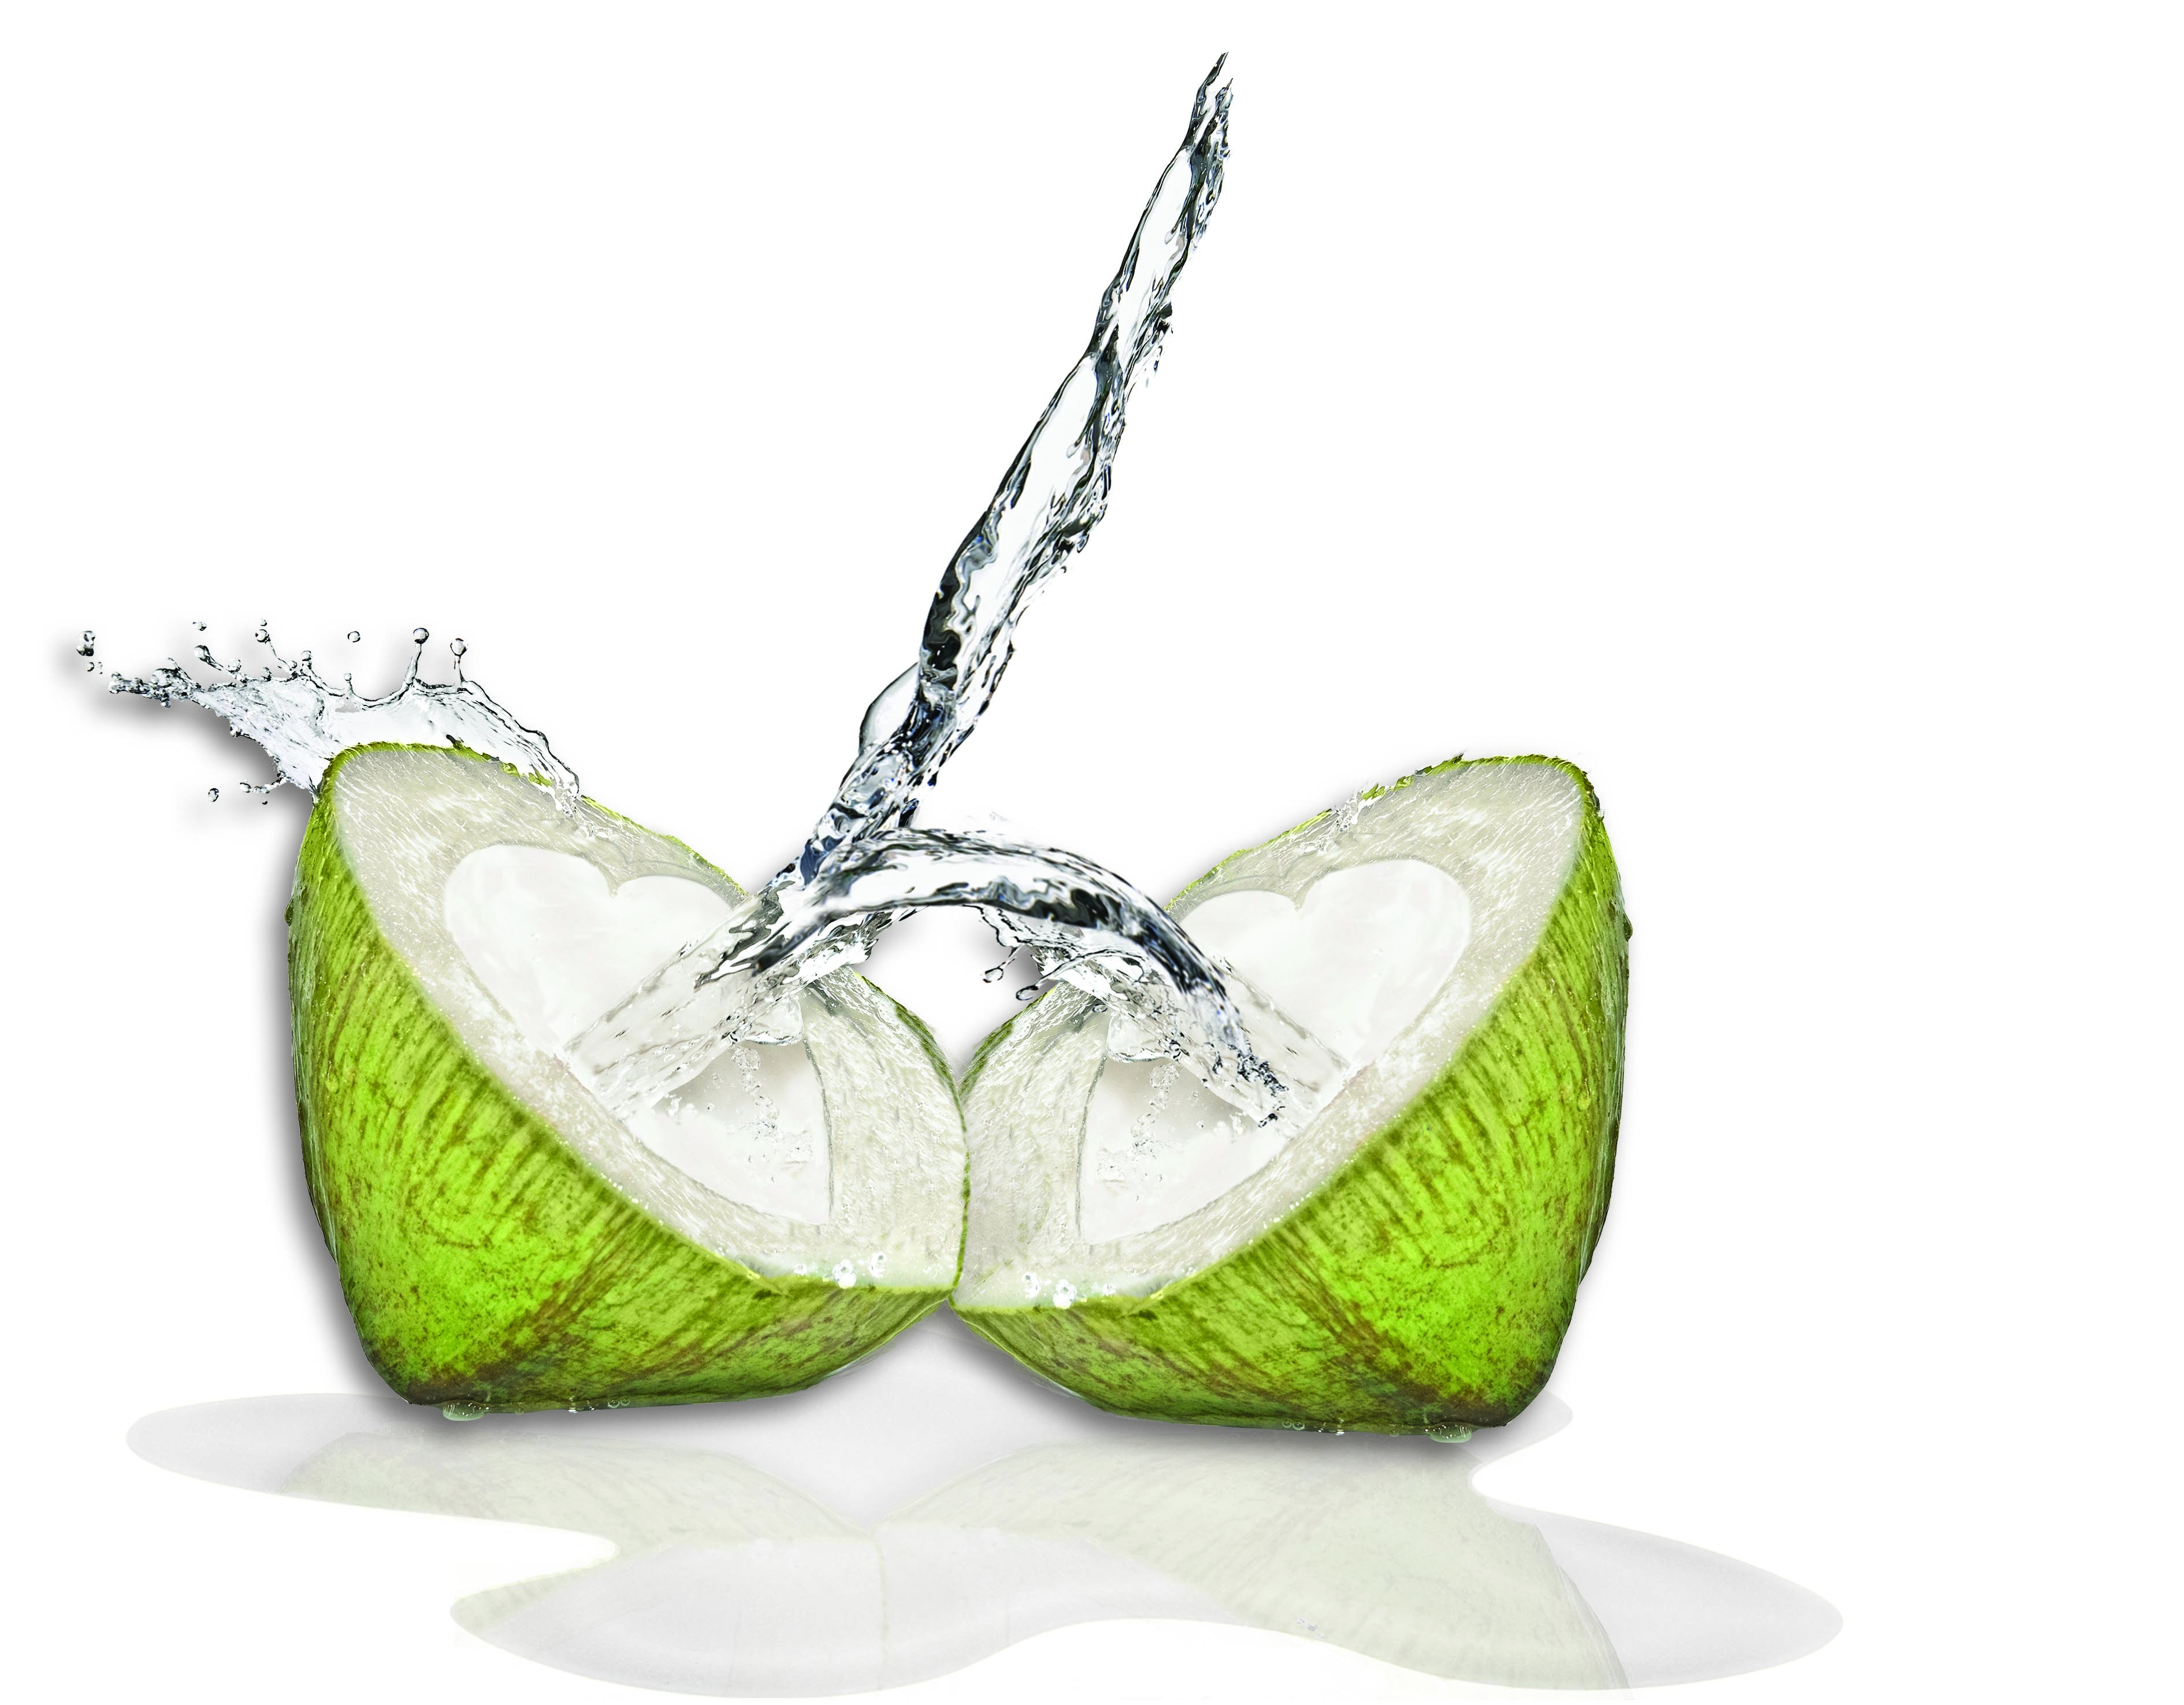 Coconut water is best straight from the coconut